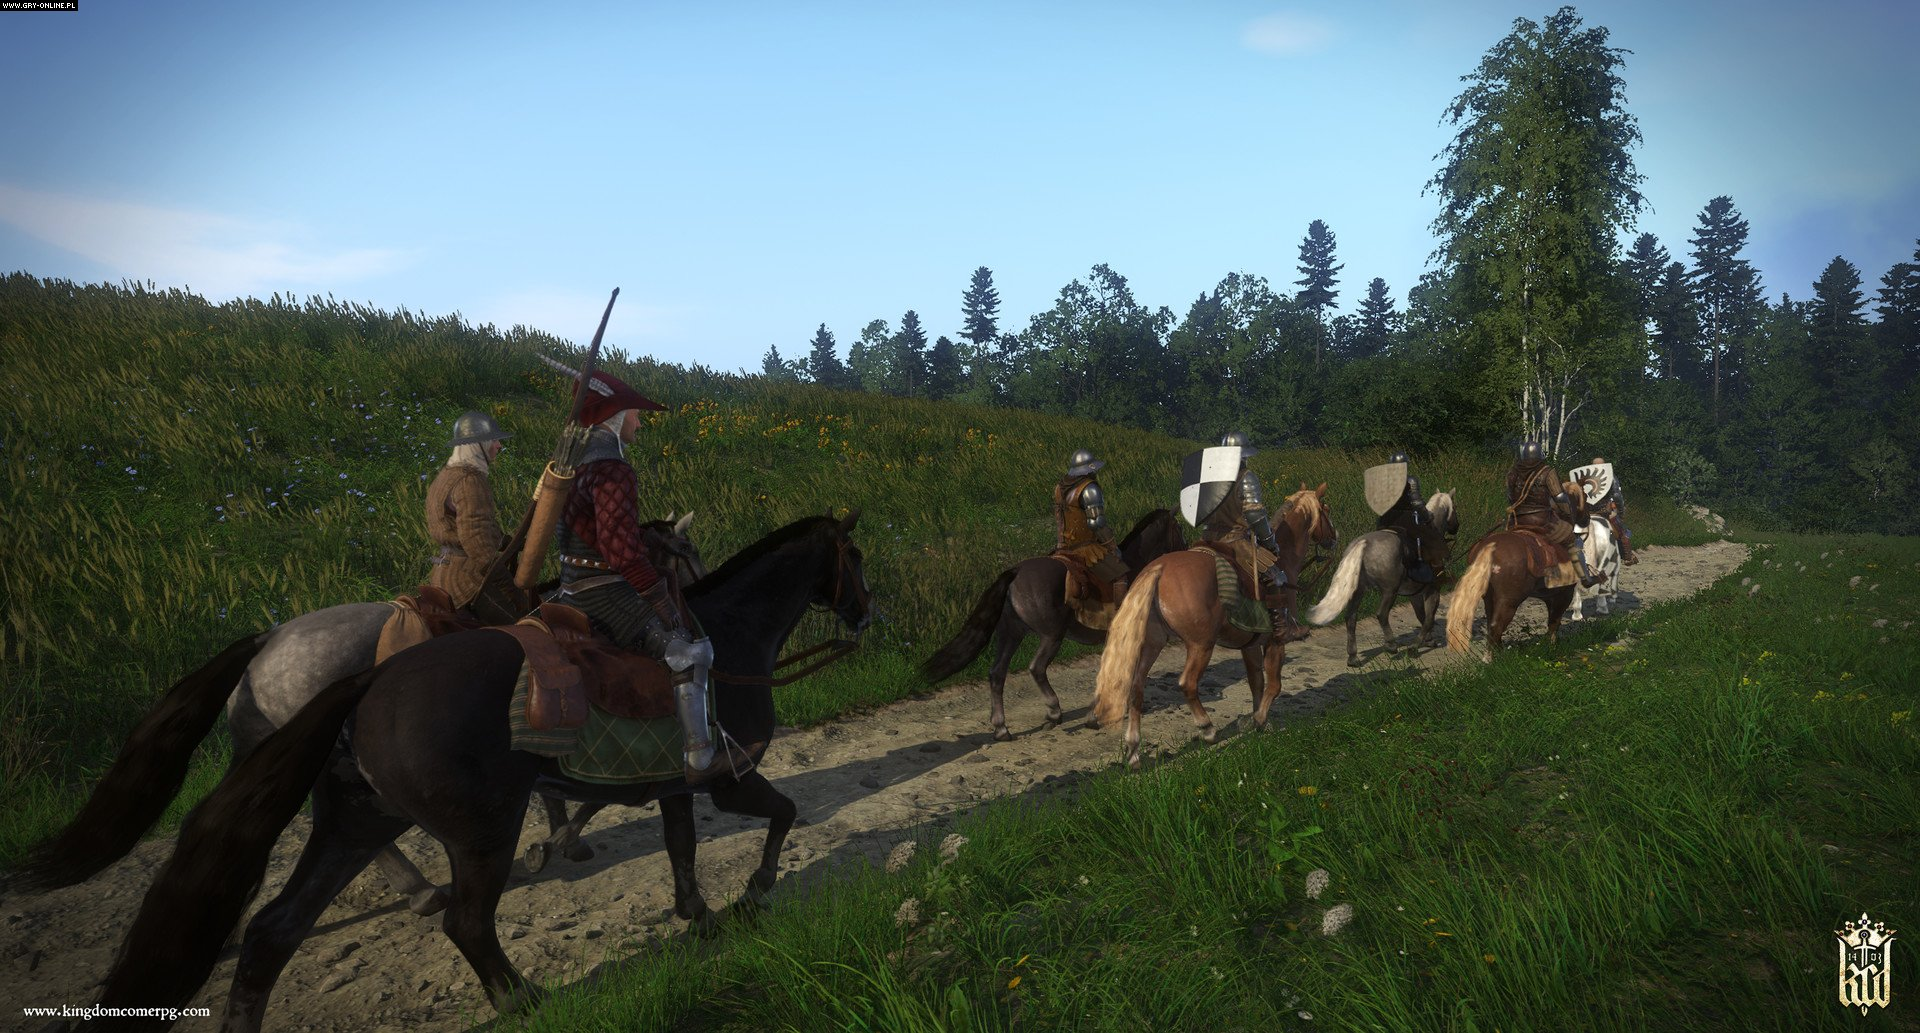 Kingdom Come: Deliverance - Band of Bastards PC, PS4, XONE Gry Screen 5/8, Warhorse Studios, Deep Silver / Koch Media